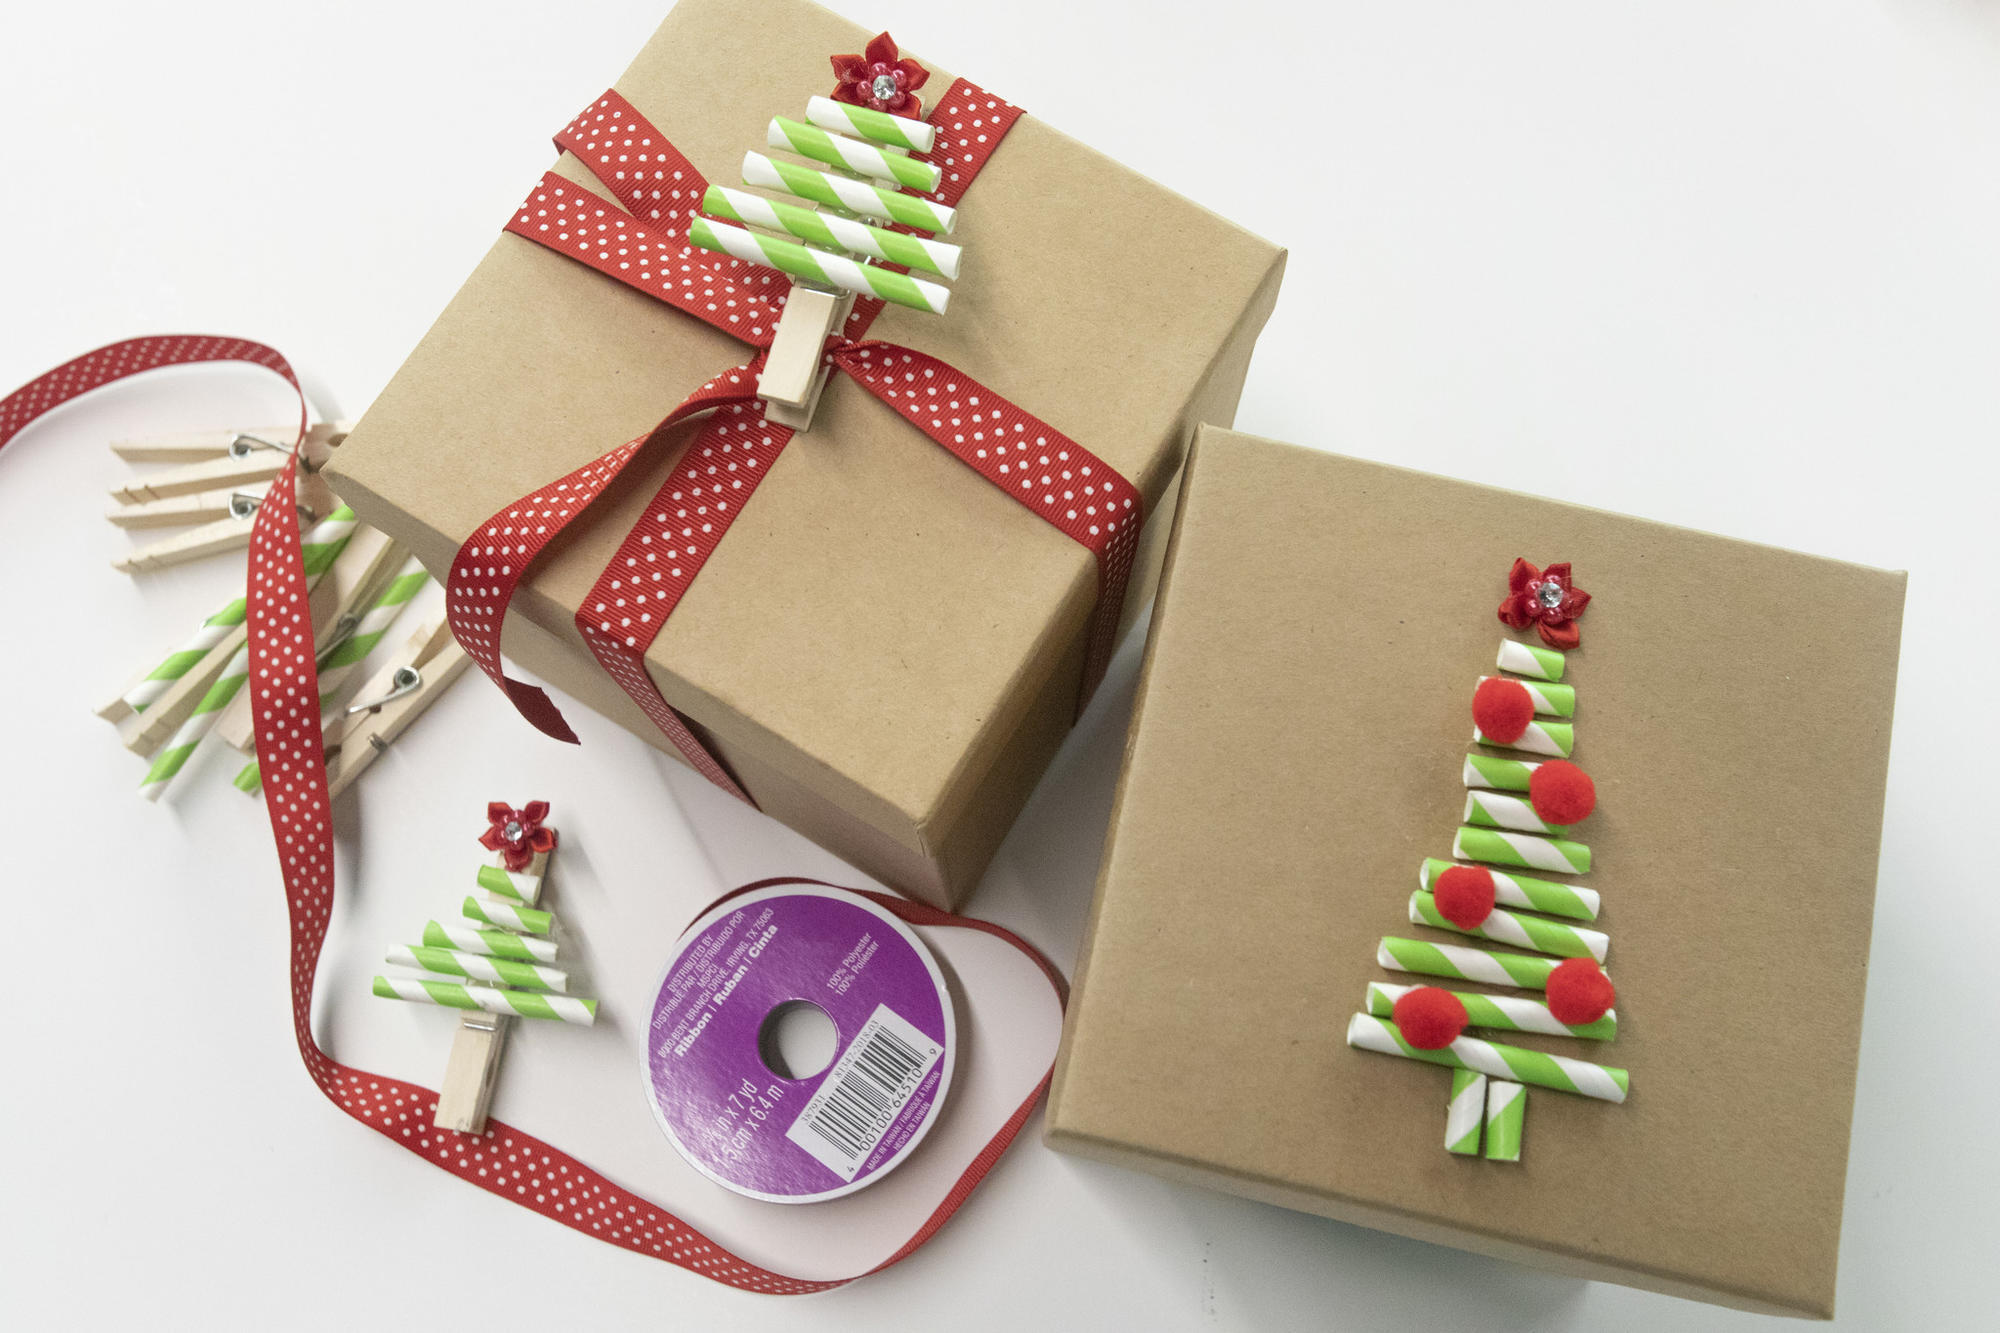 3 crafty ways to wrap holiday gifts from Etsys trend queen (and celebrity TV judge!)